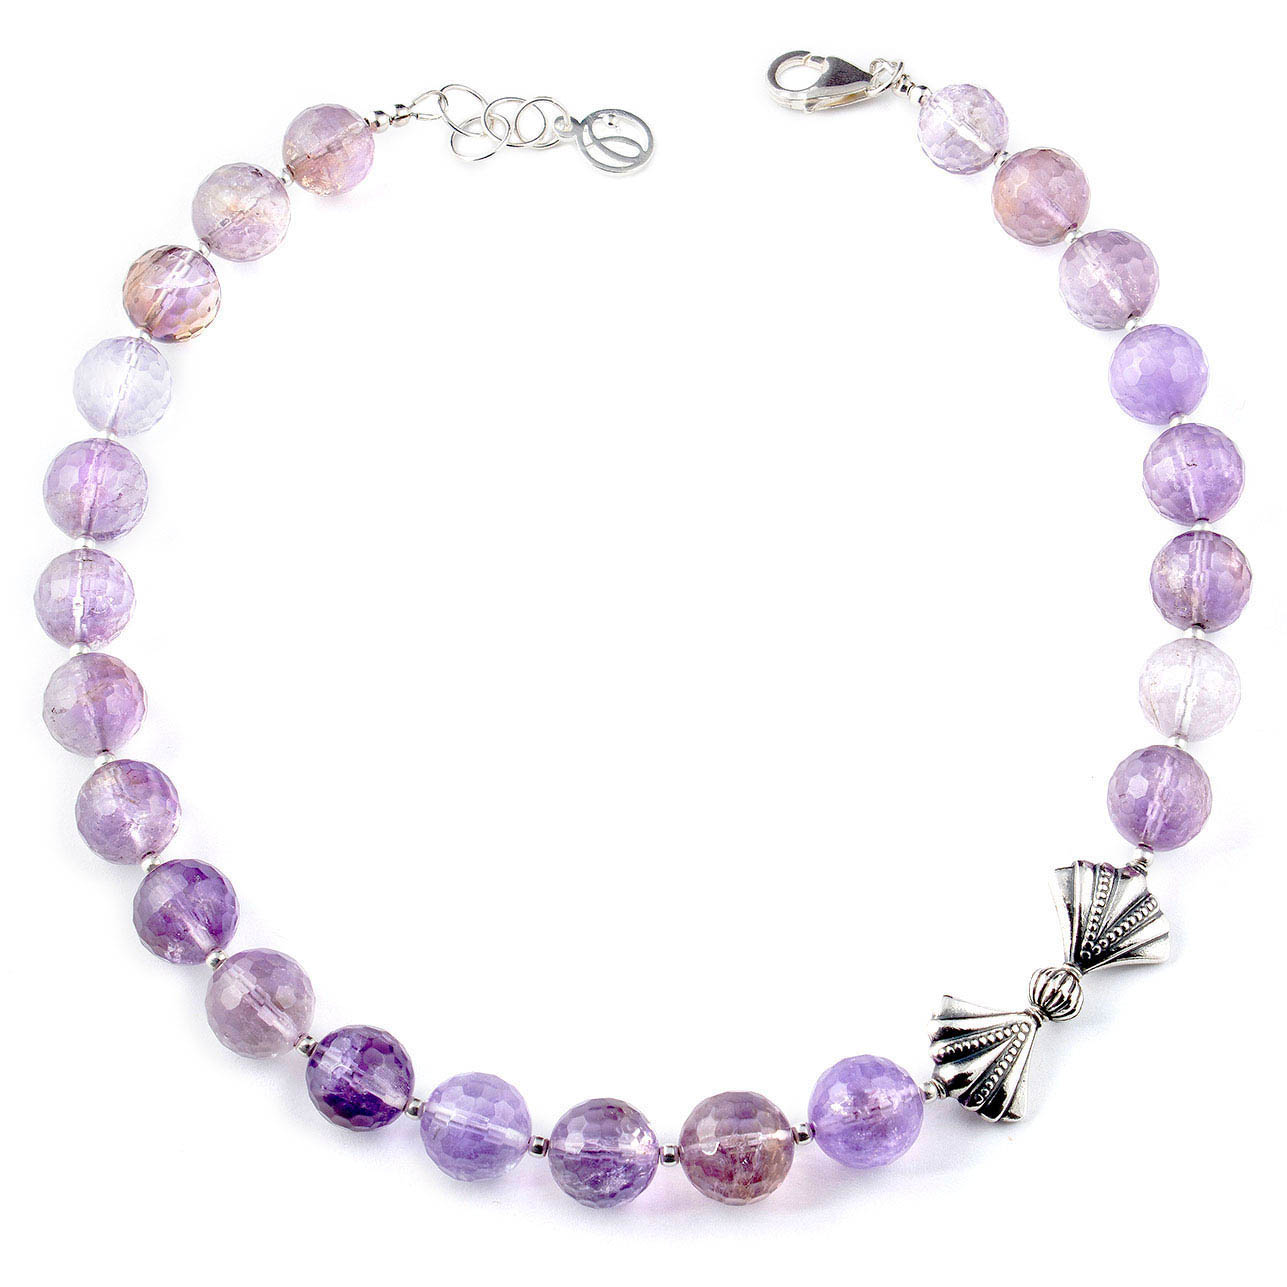 Handcrafted choker style bead jewelry made of ametrine and bali silver